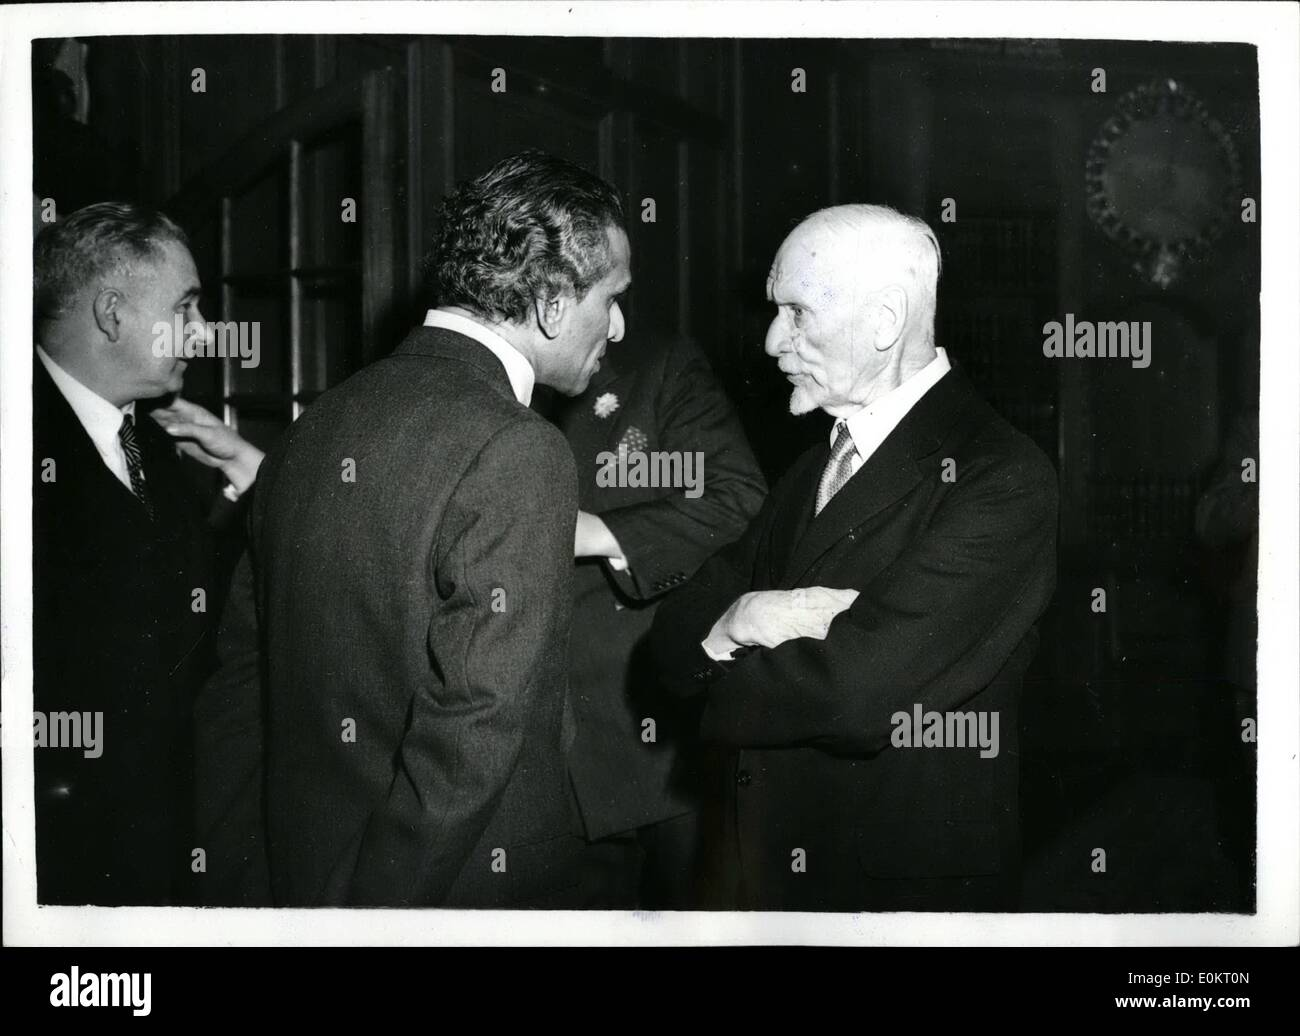 Nov. 23, 1949 - 23-11-49 General Smuts attends reception at South Africa House, chats to Mr. Krishna Menon. hoto Shows - Stock Image